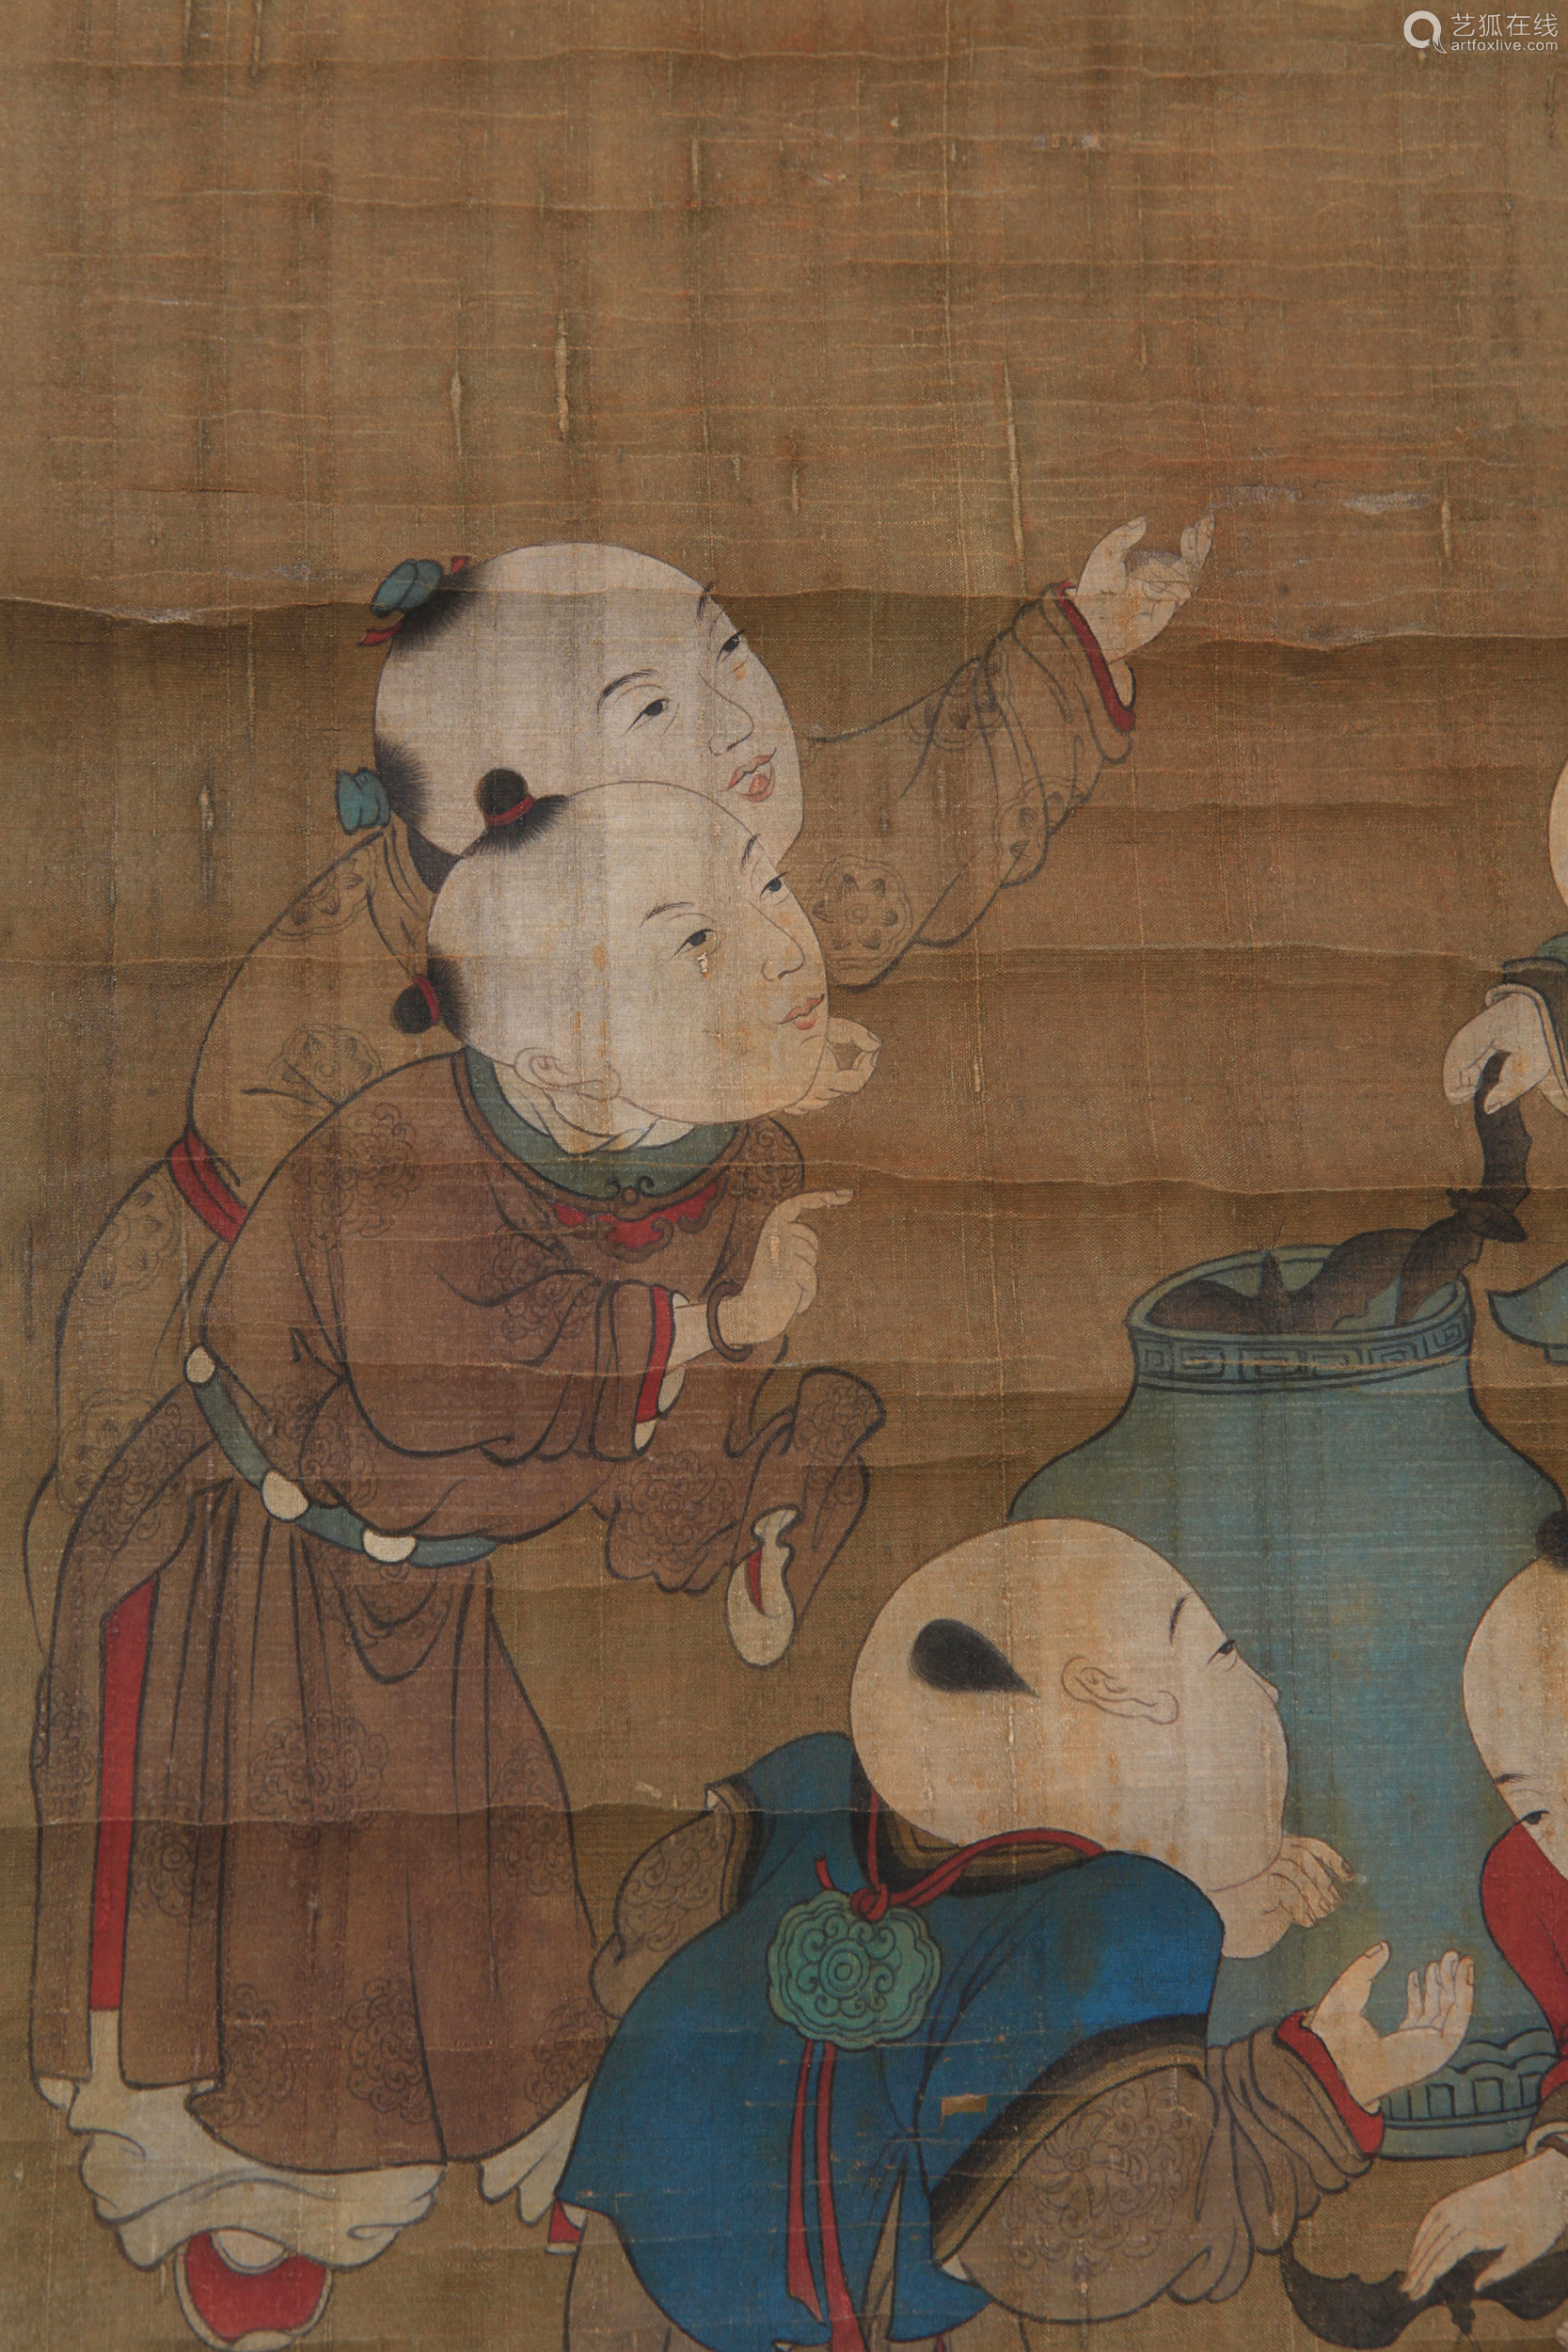 Lu Wenying - Painting of Playing Figures